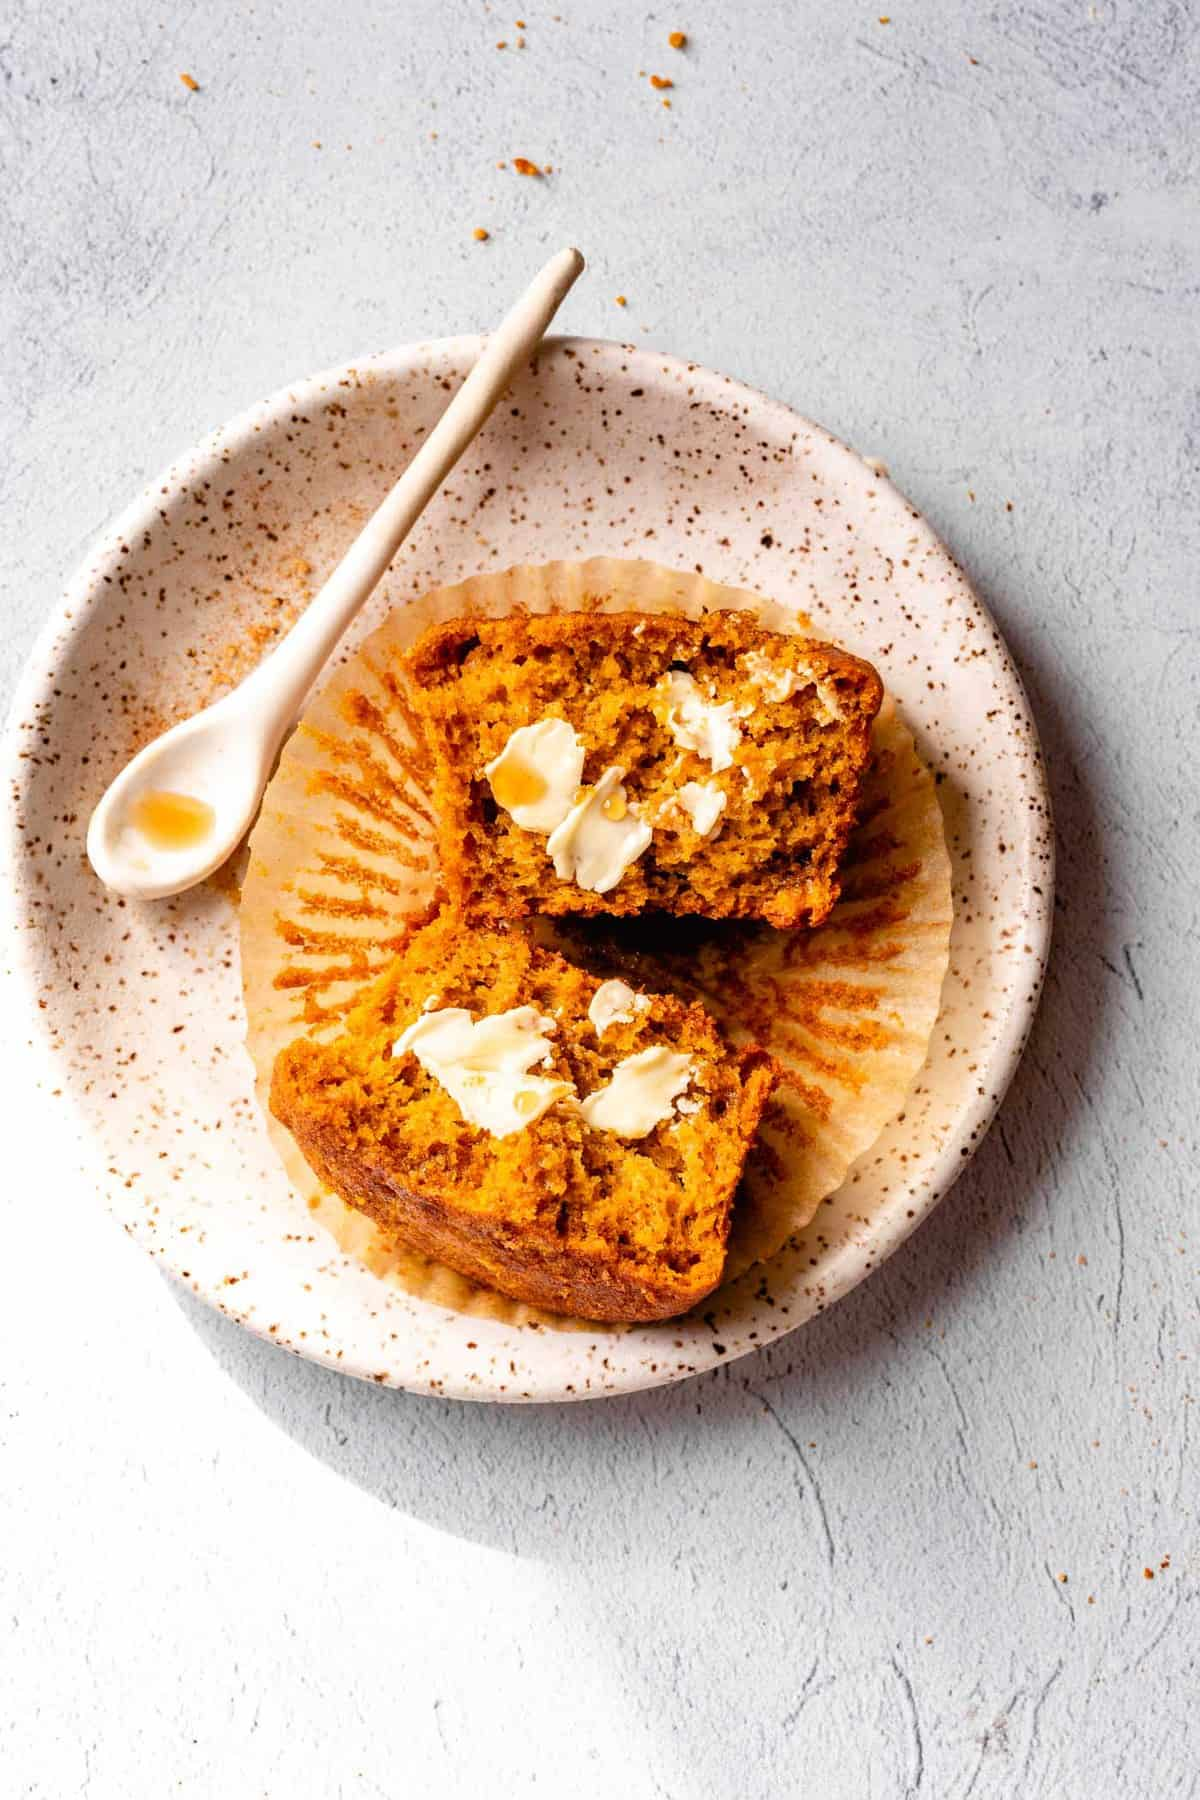 a gluten-free dairy-free pumpkin muffin on a speckled white plate topped with butter and maple